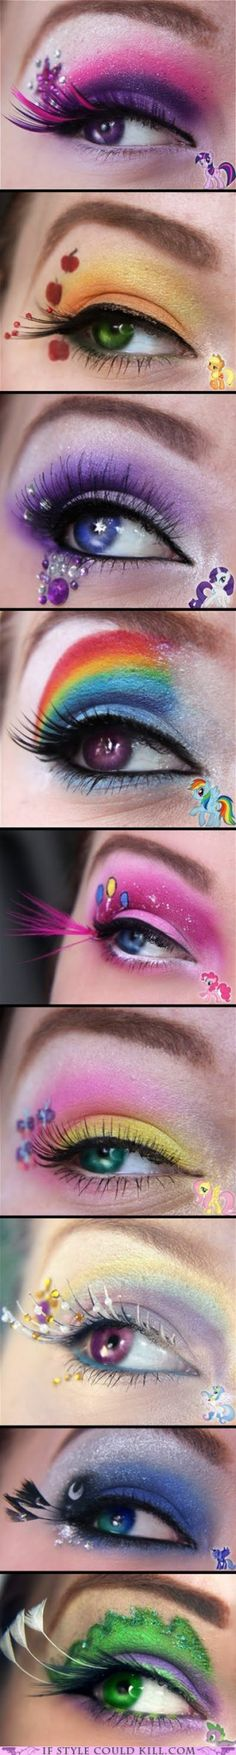 My Little Pony eye makeup! Coolest makeup ever!